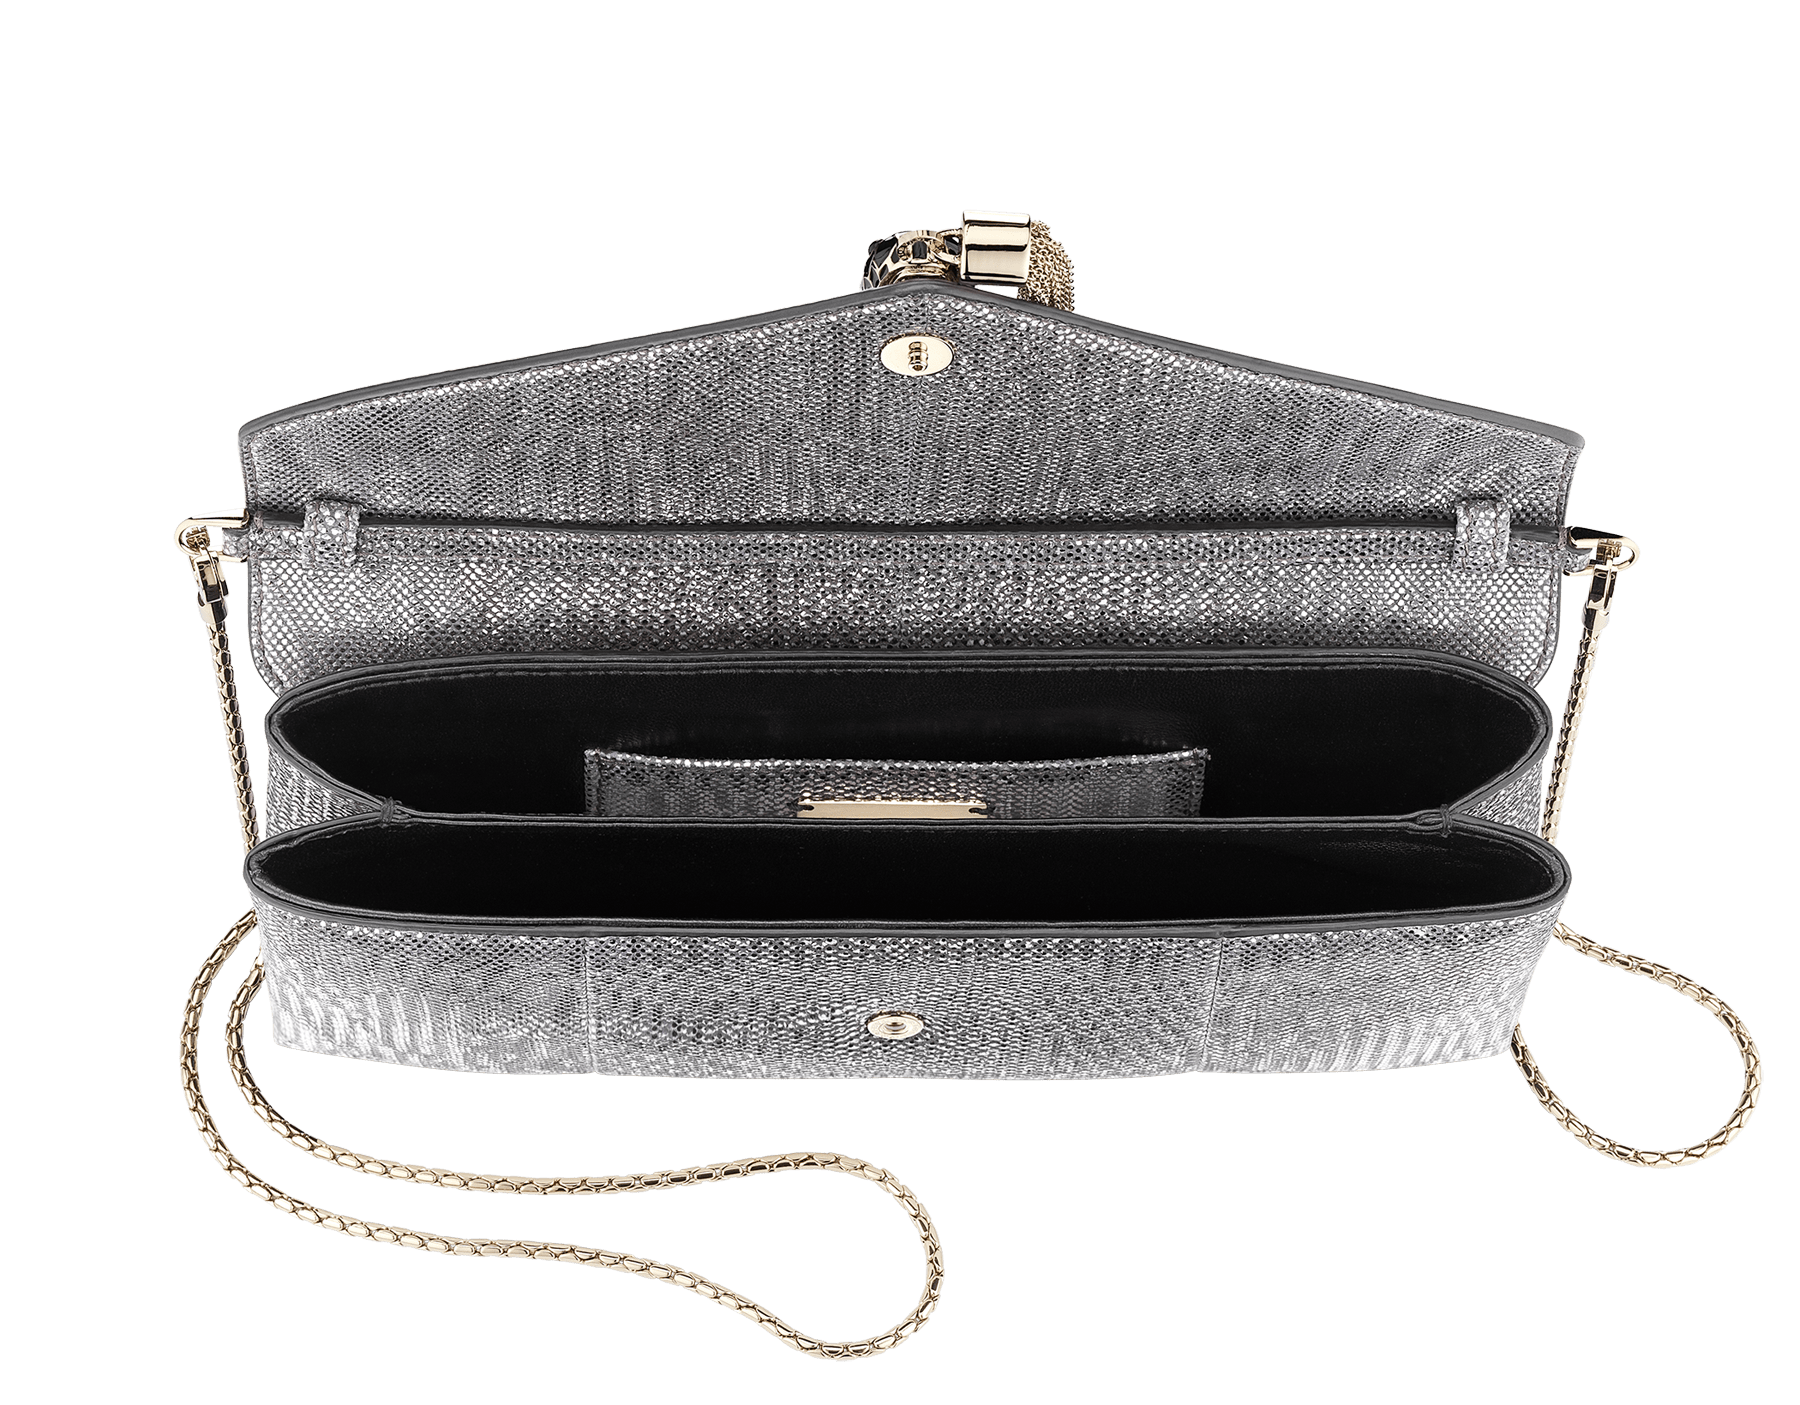 Serpenti evening clutch in charcoal diamond metallic karung skin. Snakehead stud closure with tassel in light gold plated brass decorated with black and glitter charcoal diamond enamel, and black onyx eyes. 288165 image 4